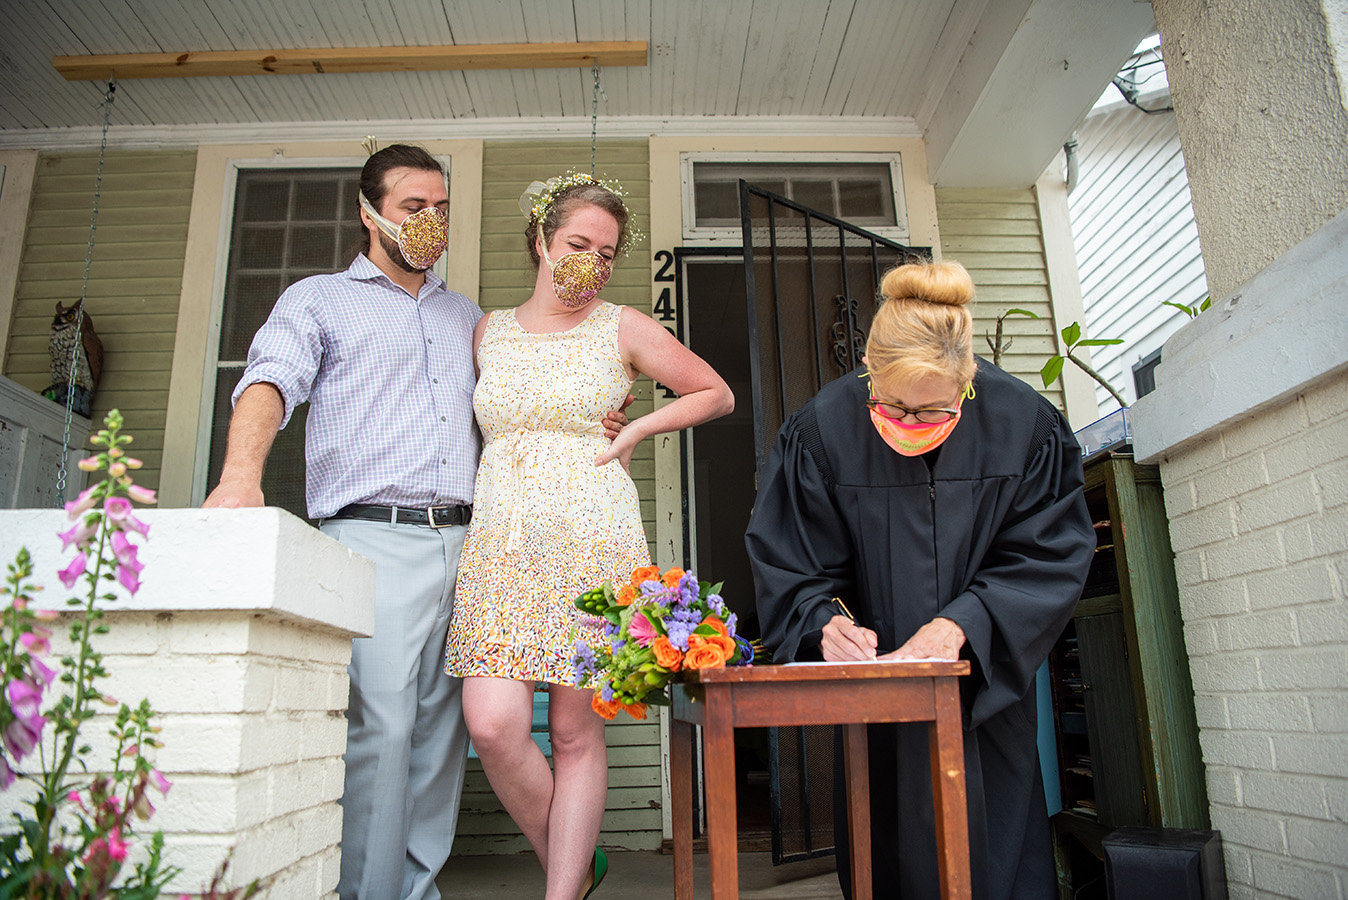 "Elizabeth's biological mother dropped off a wedding present for the couple on their porch prior to the wedding: ""two fully functional n-95 masks covered in glitter, courtesy of my step-dad, that proceeded to shed glitter everywhere like magic pixie dust through the entire ceremony,"" shares Elizabeth."